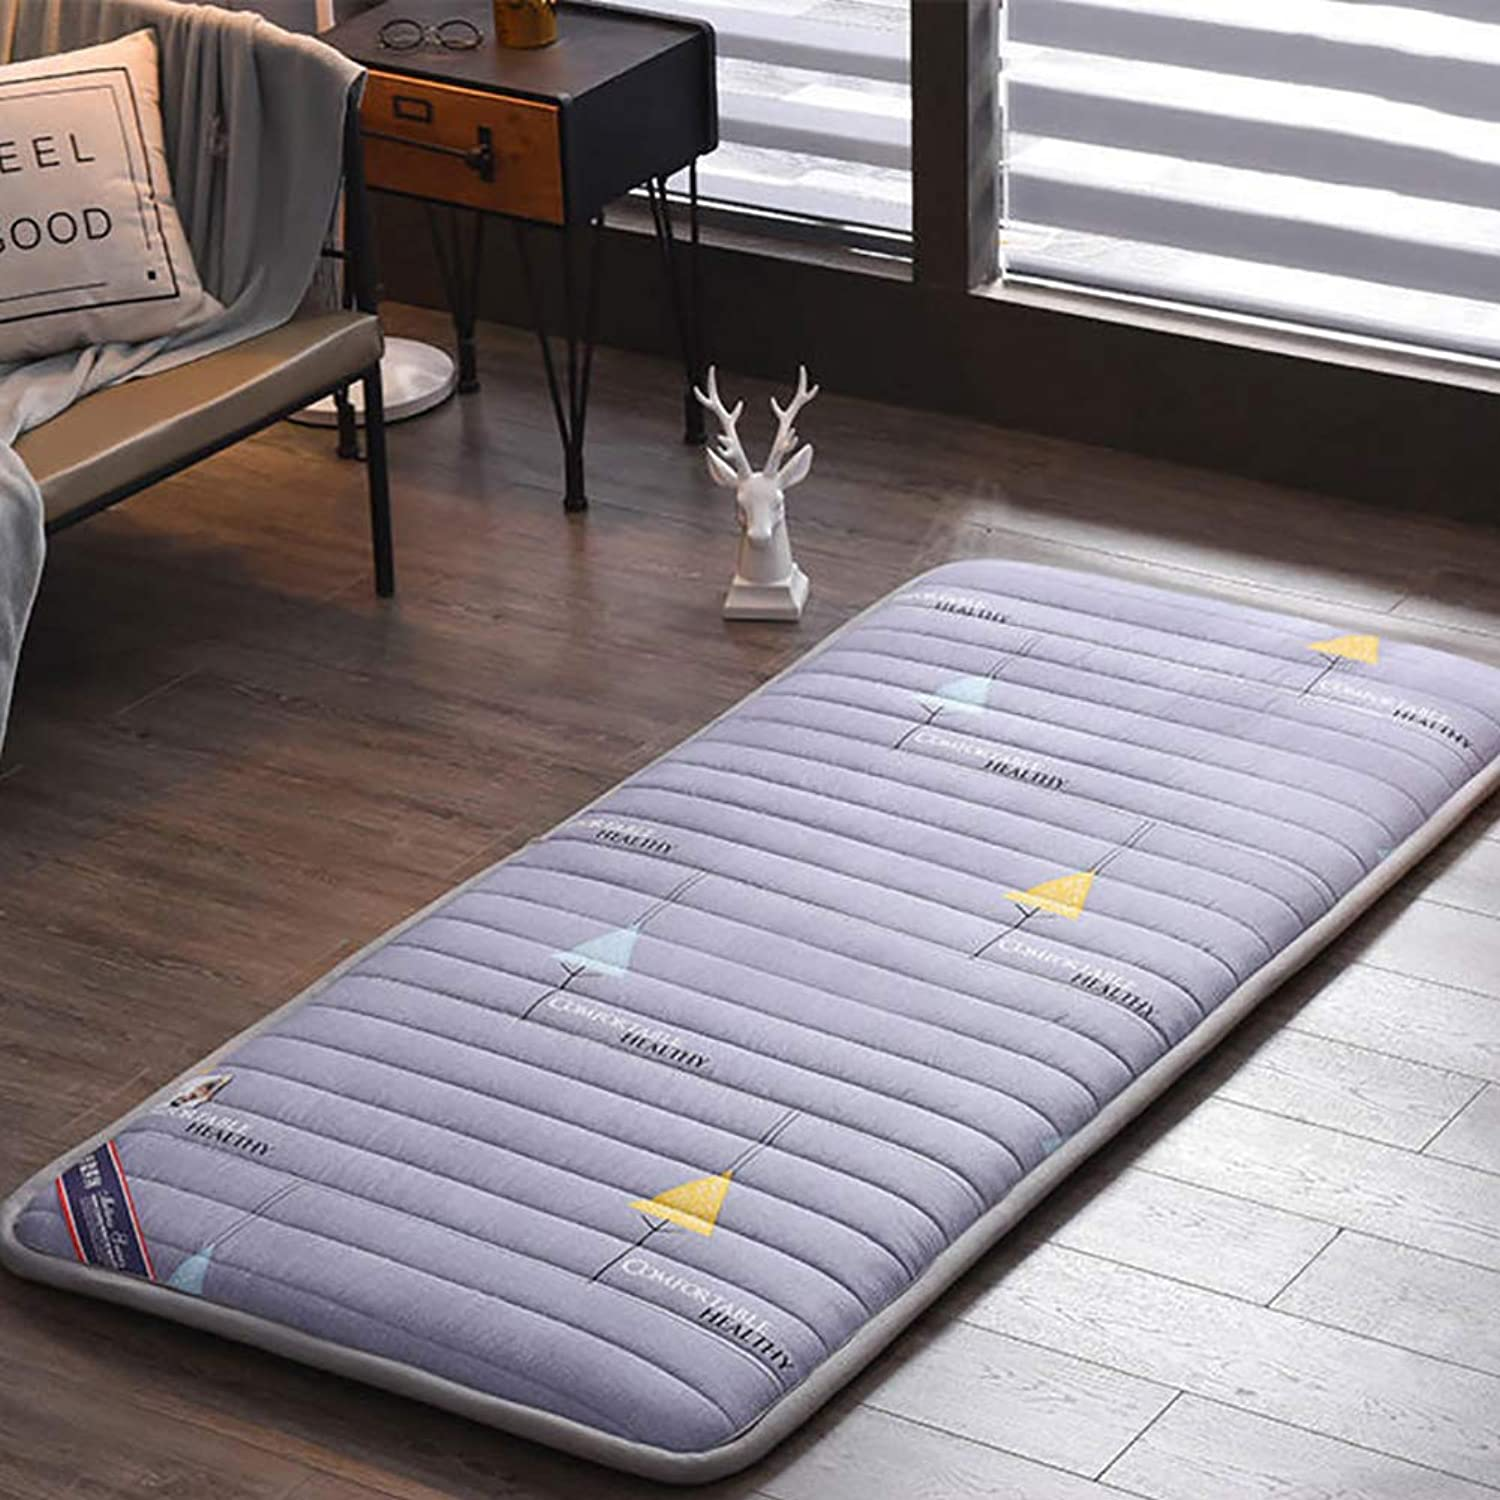 Thick Student Dormitory Mattress,Ultra Soft Non-Slip Traditional Japanese Floor Futon Mattress Quilted Fitted Mattress Nap mat-G 100x200cm(39x79inch)